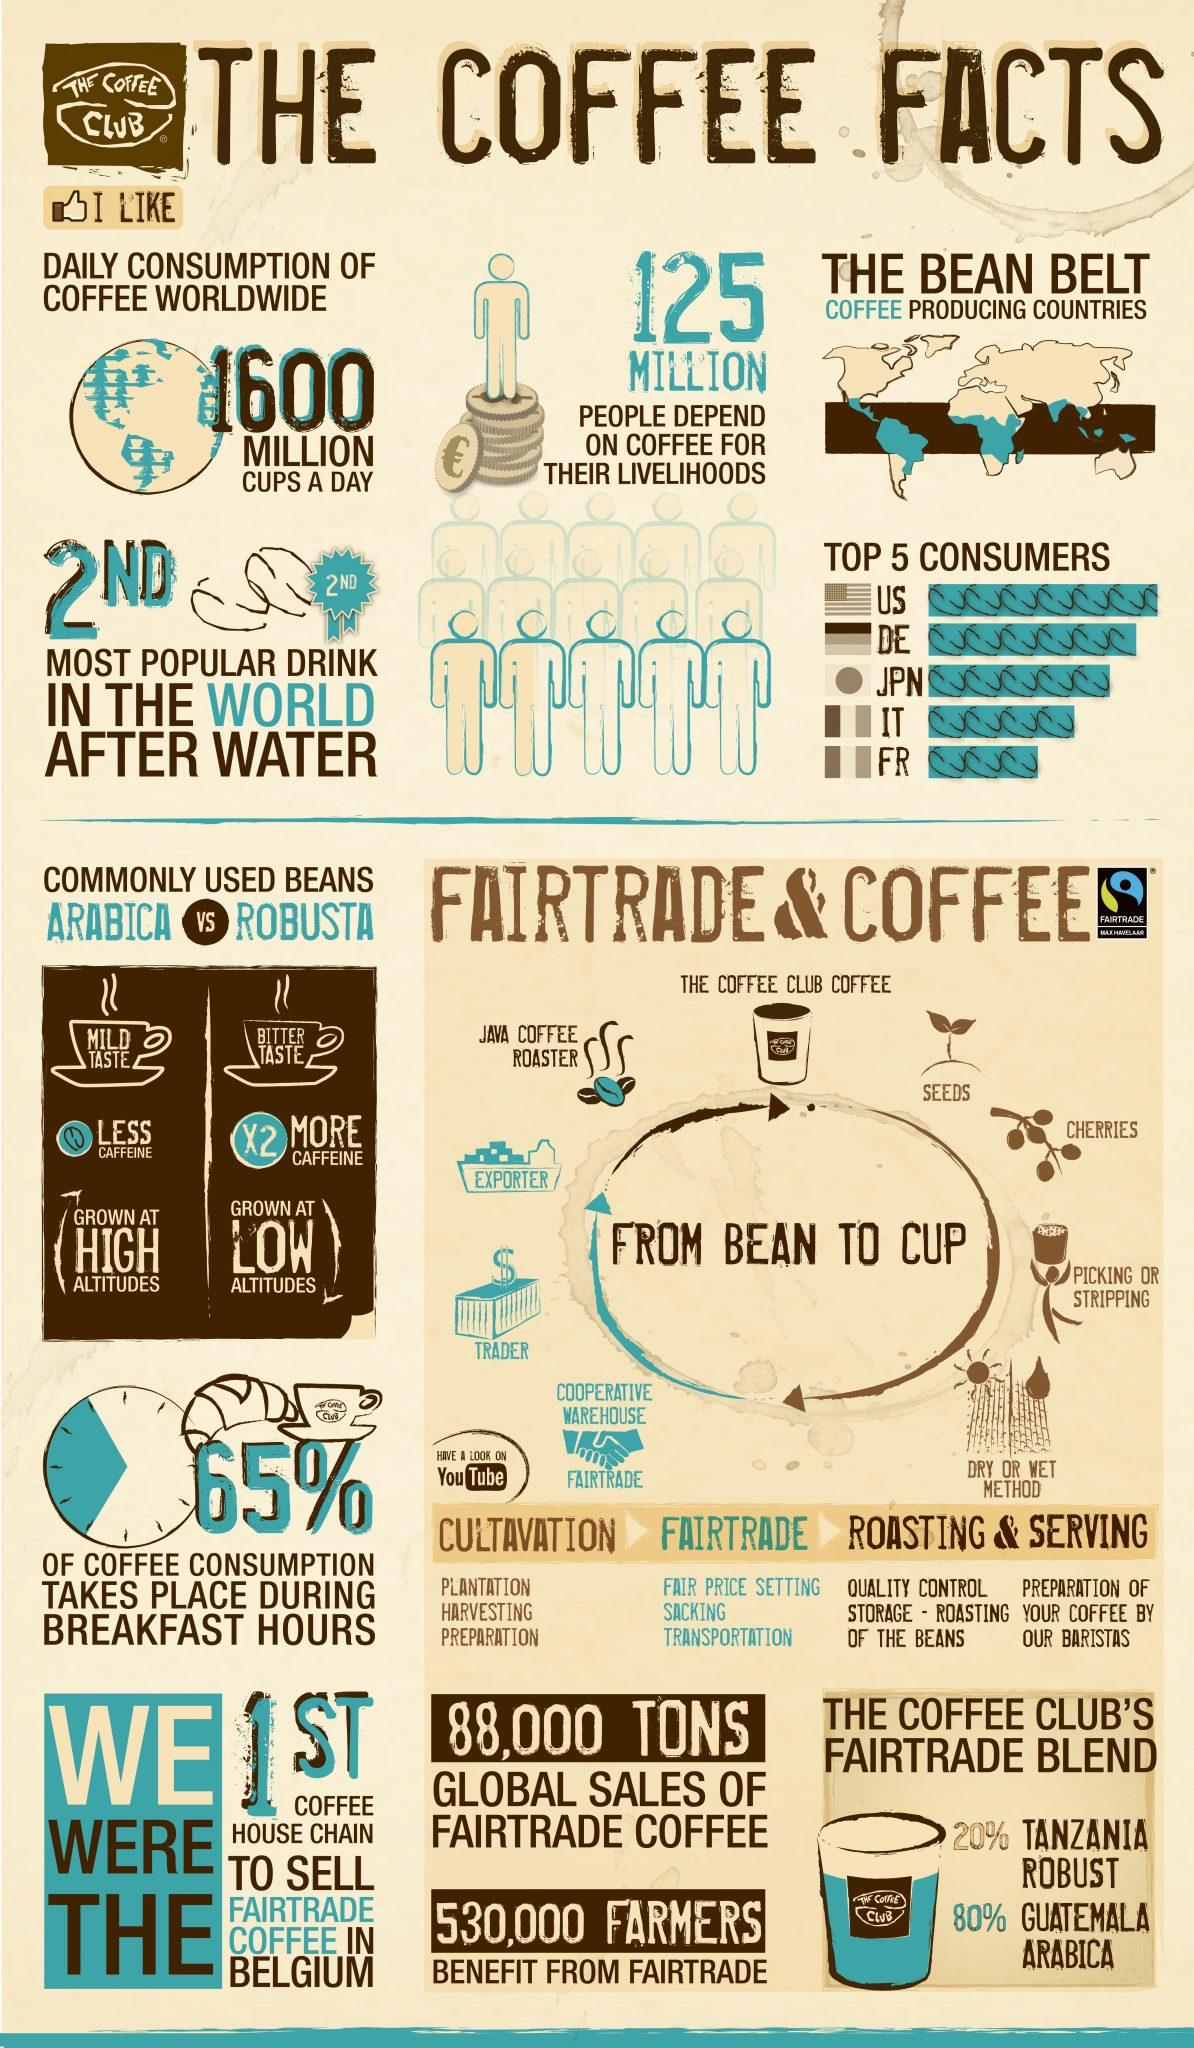 The Coffee Glossary